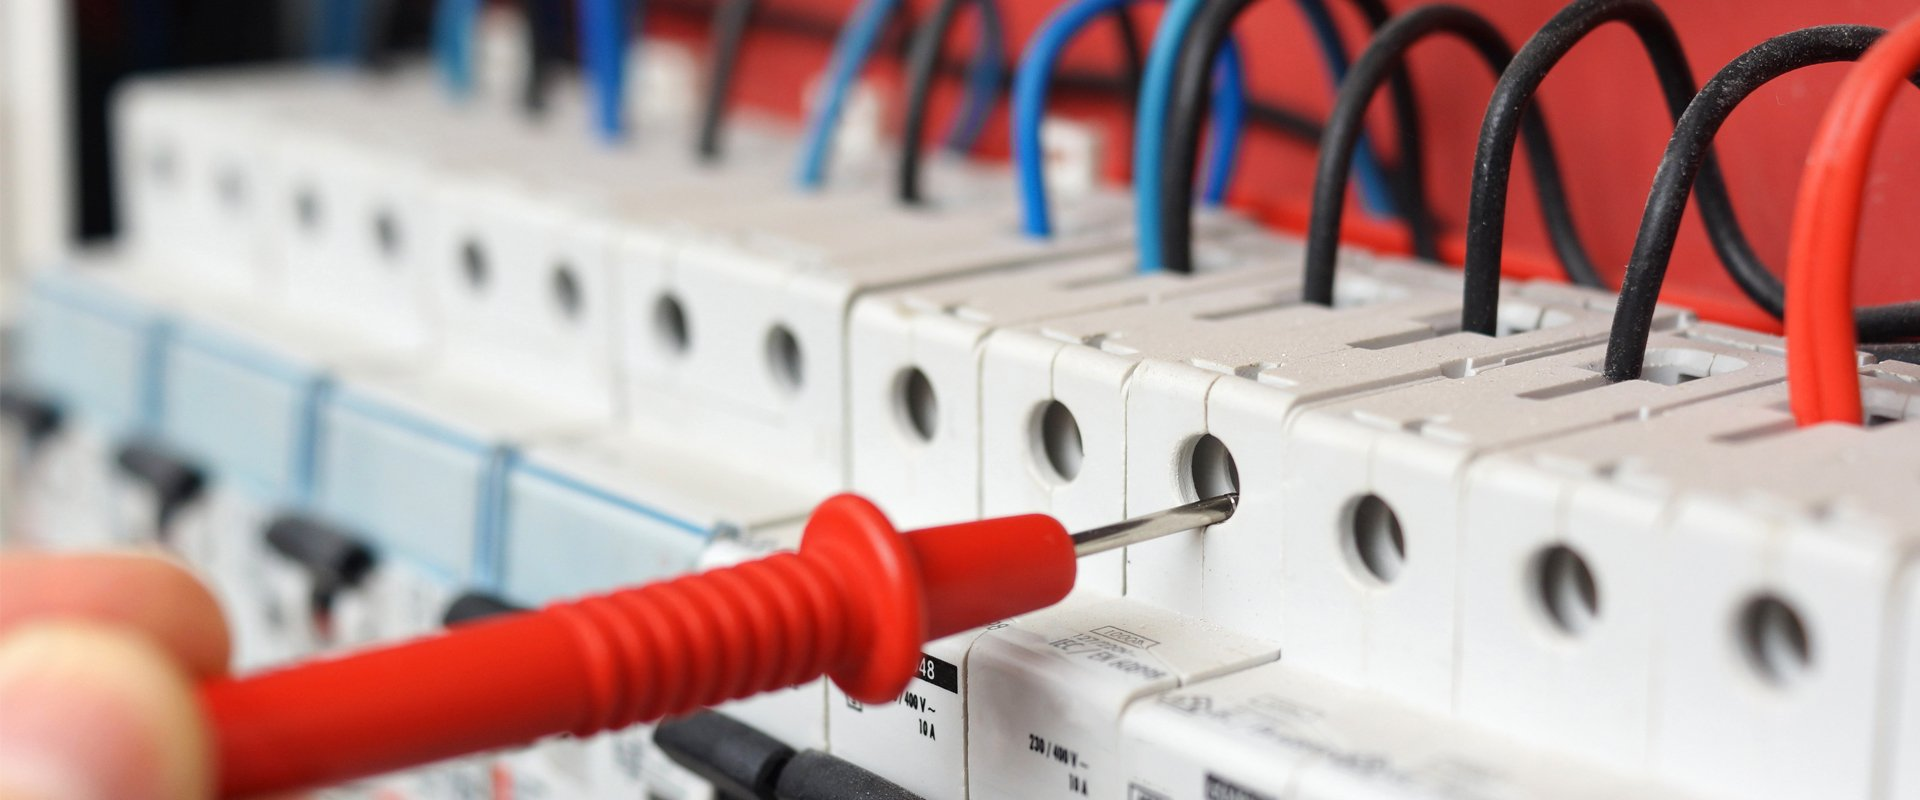 Fuse box inspections